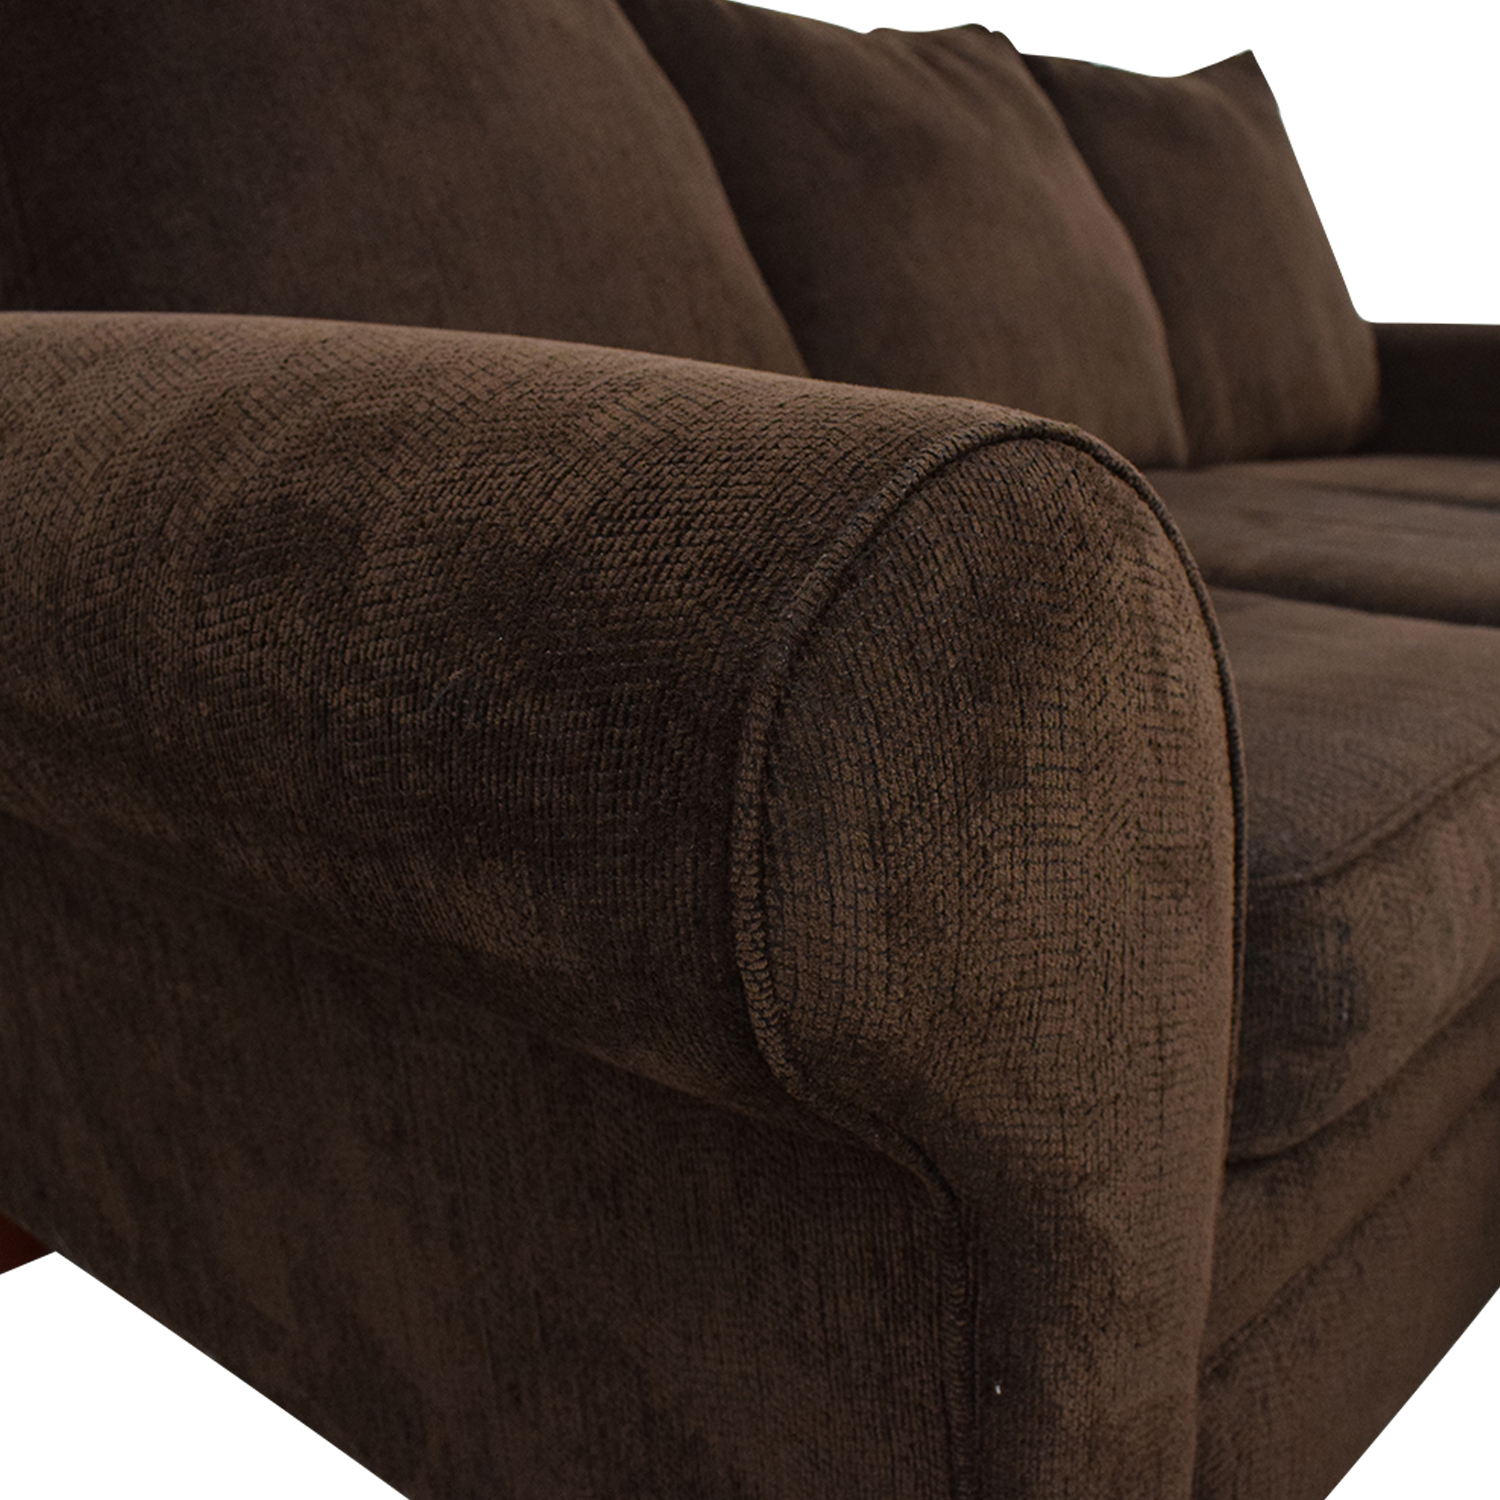 Swell 74 Off Klaussner Klaussner Kazler K57000 Sofa And Ottoman Sofas Pdpeps Interior Chair Design Pdpepsorg